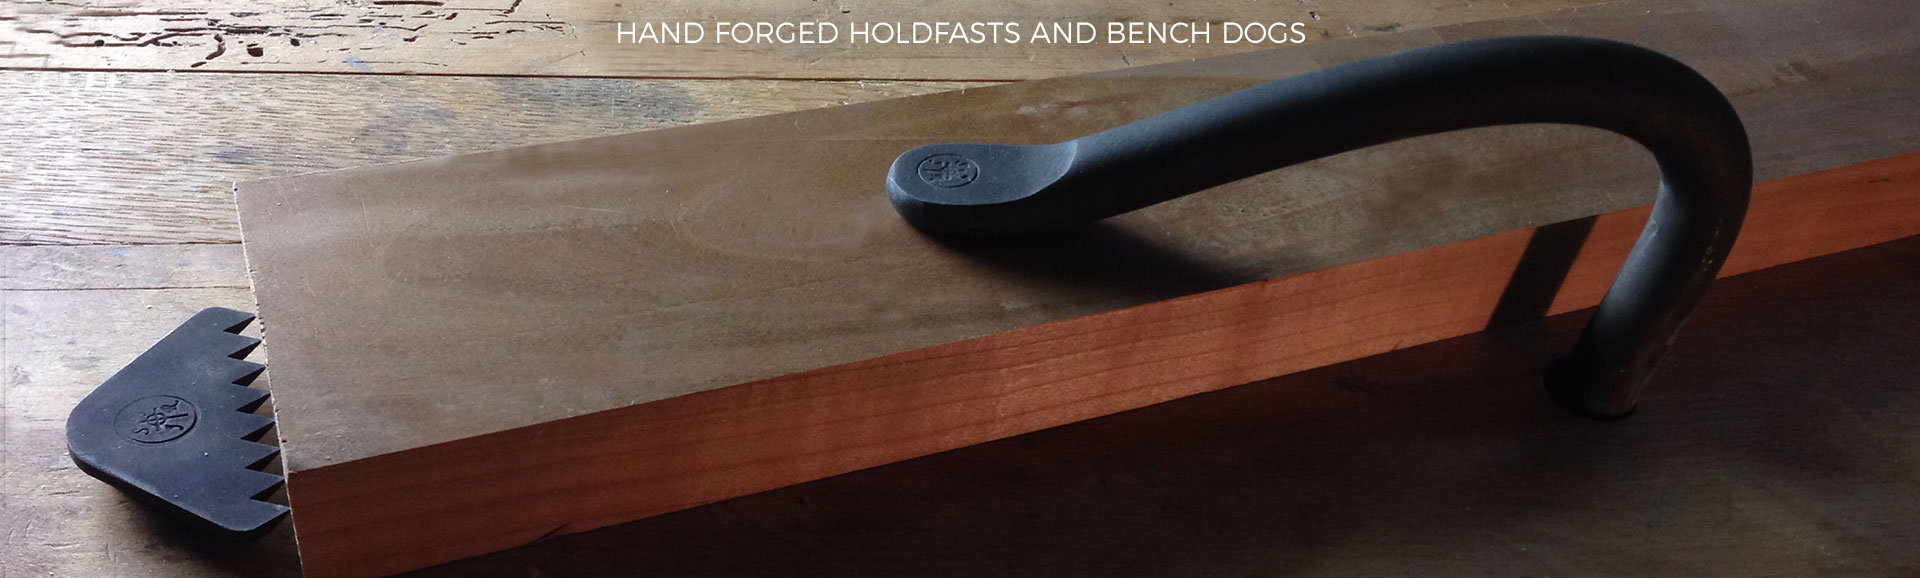 Bench Holdfasts